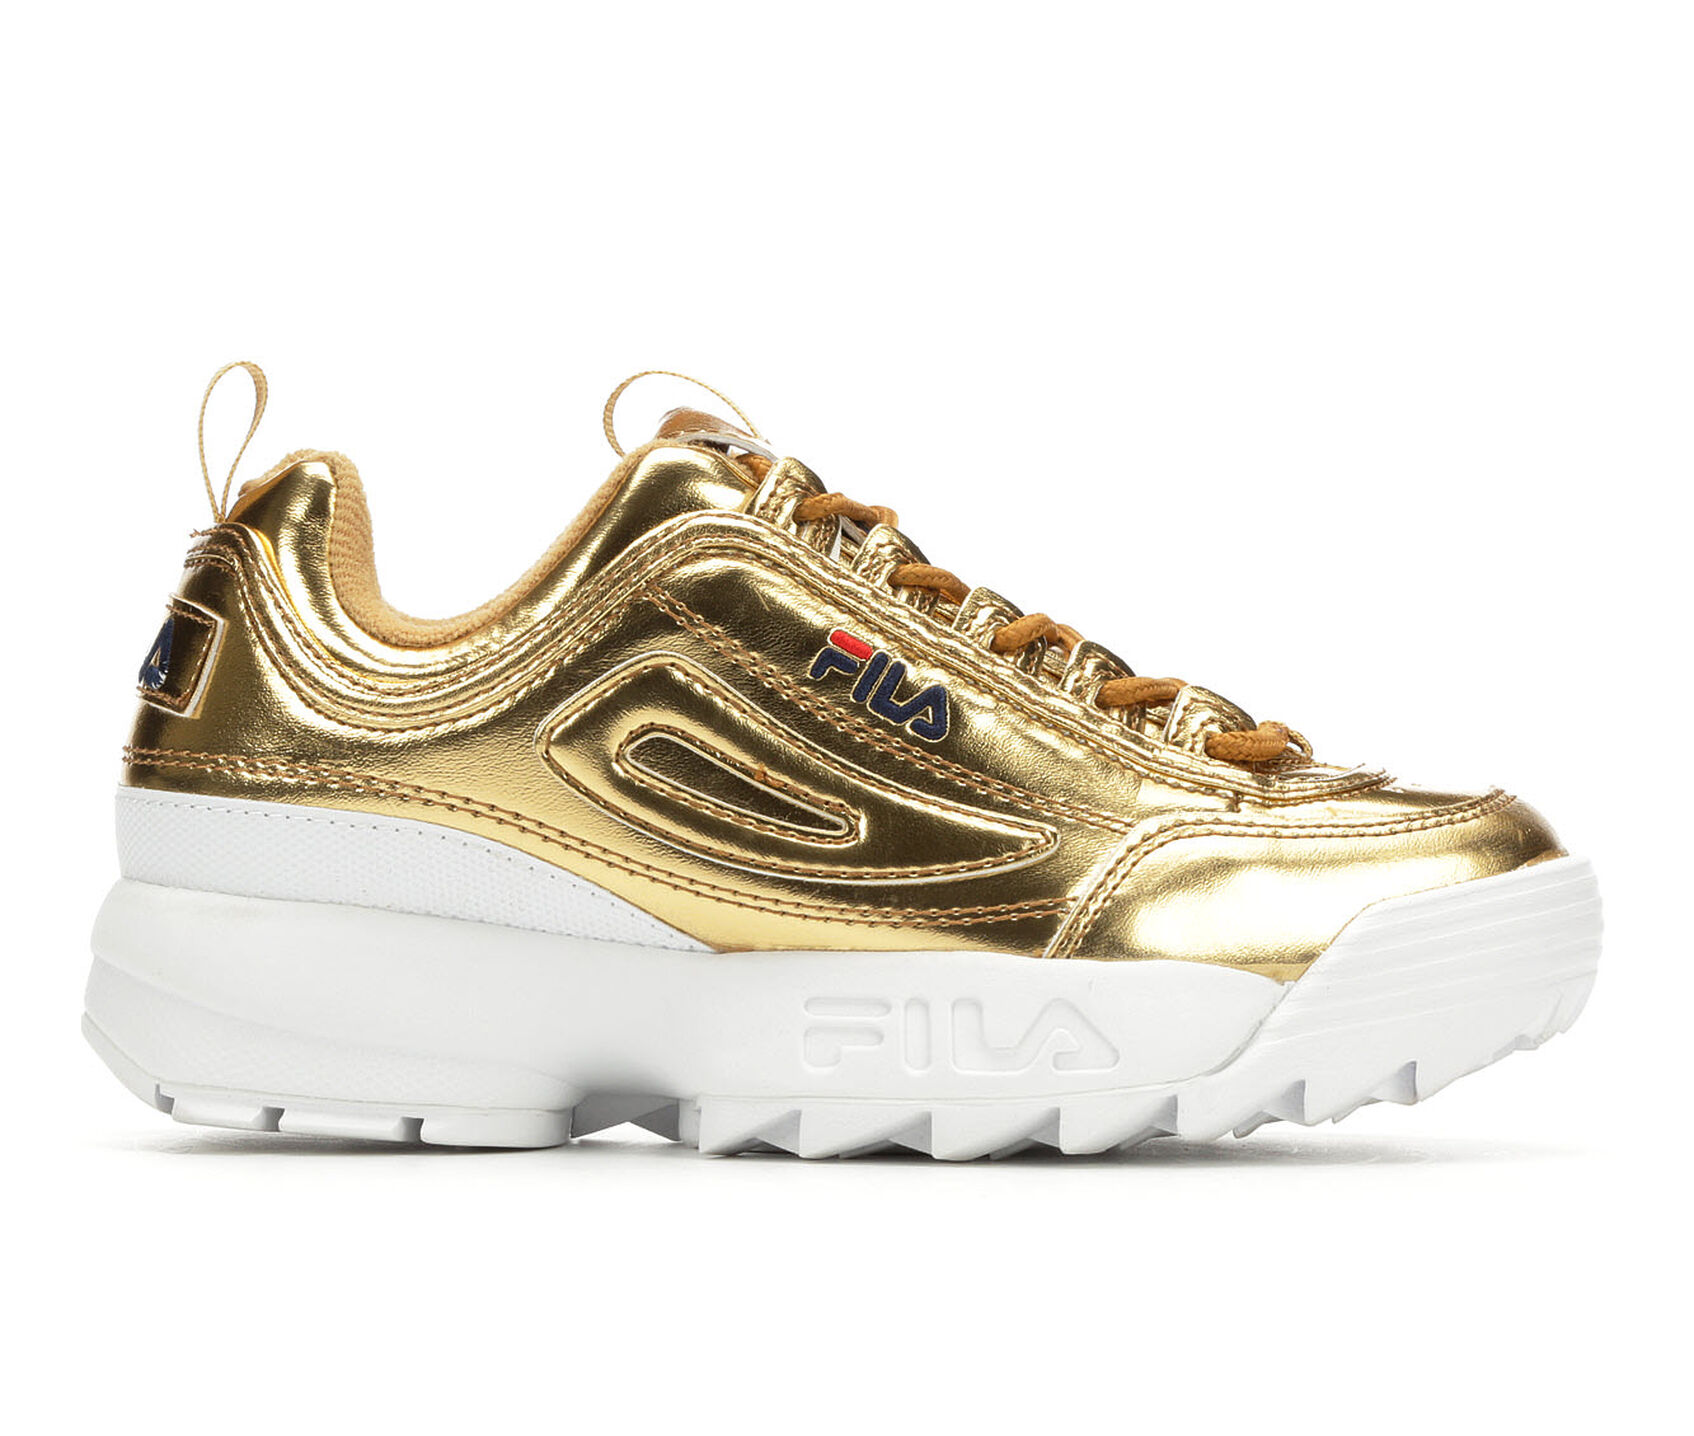 fd9e9e979153 ... Fila Disruptor II Premium Metallic Sneakers. Previous